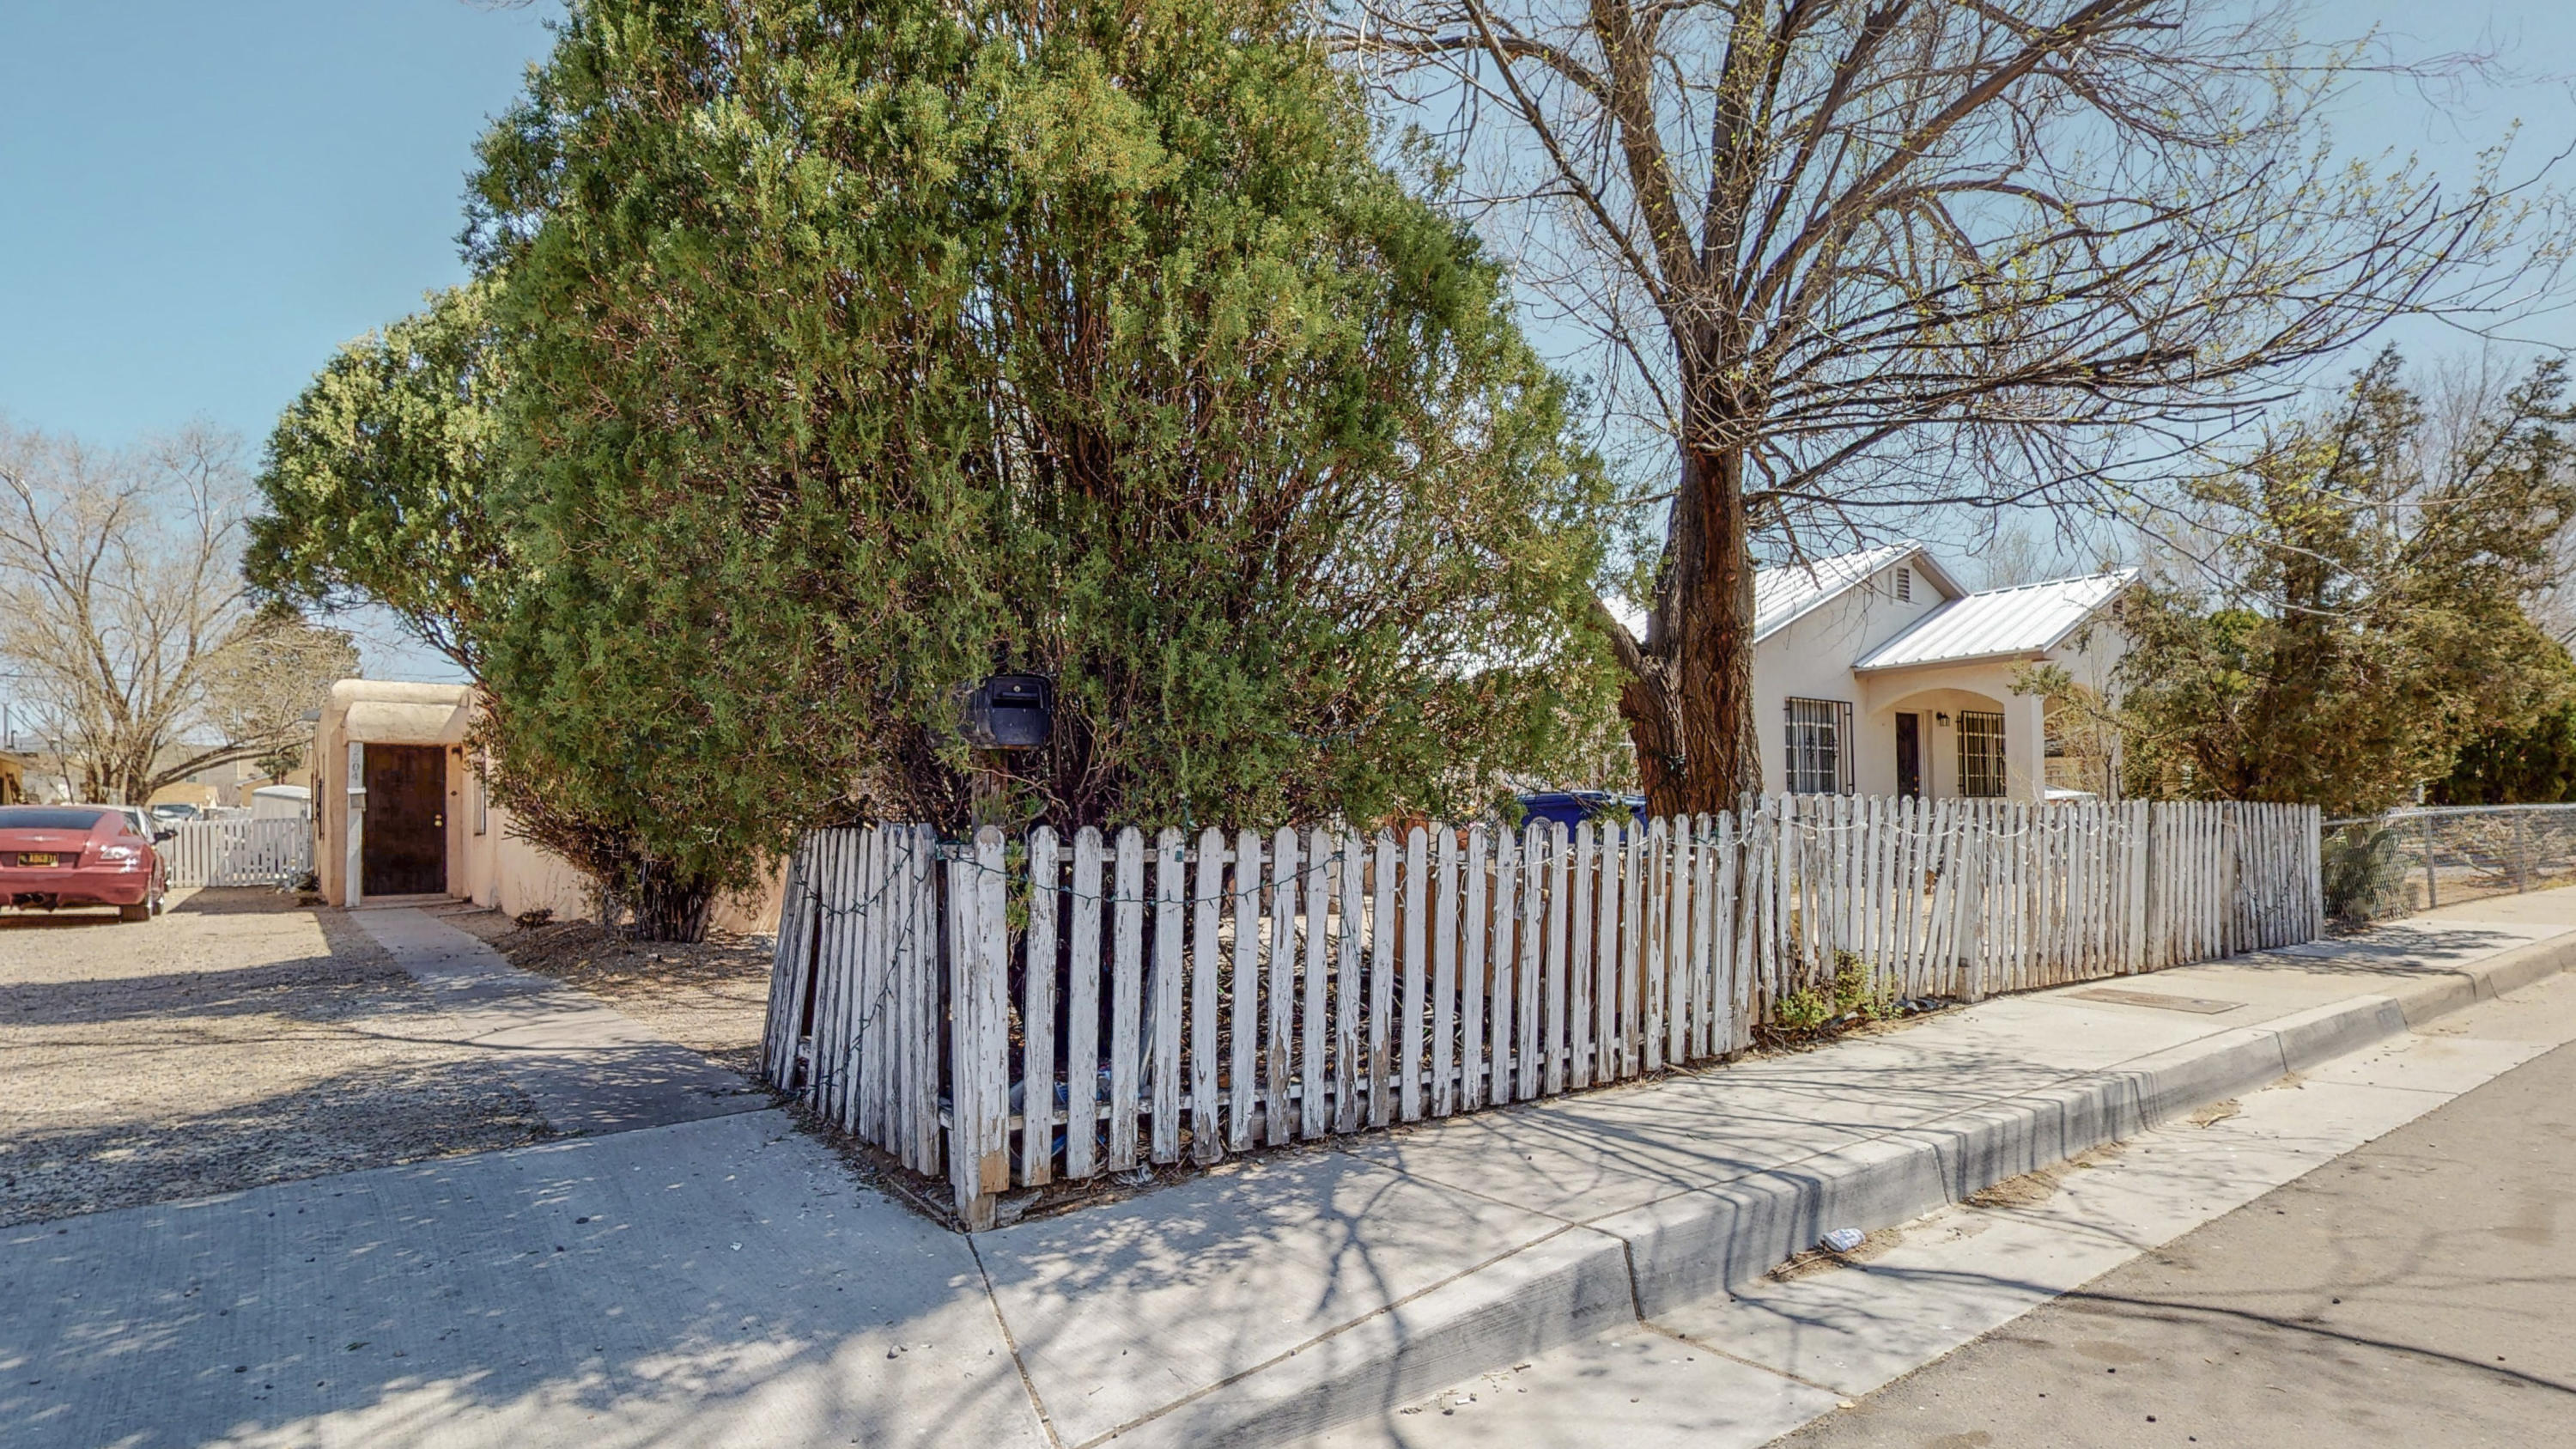 Super cute duplex with lots of potential.  Each unit is 2 bedroom, 1 full bath in approximately 900 square feet.  Spacious, functional floorplan with eat-in kitchen.  In need of a little TLC, but ready for a new owner.  Roof replaced in 2021.